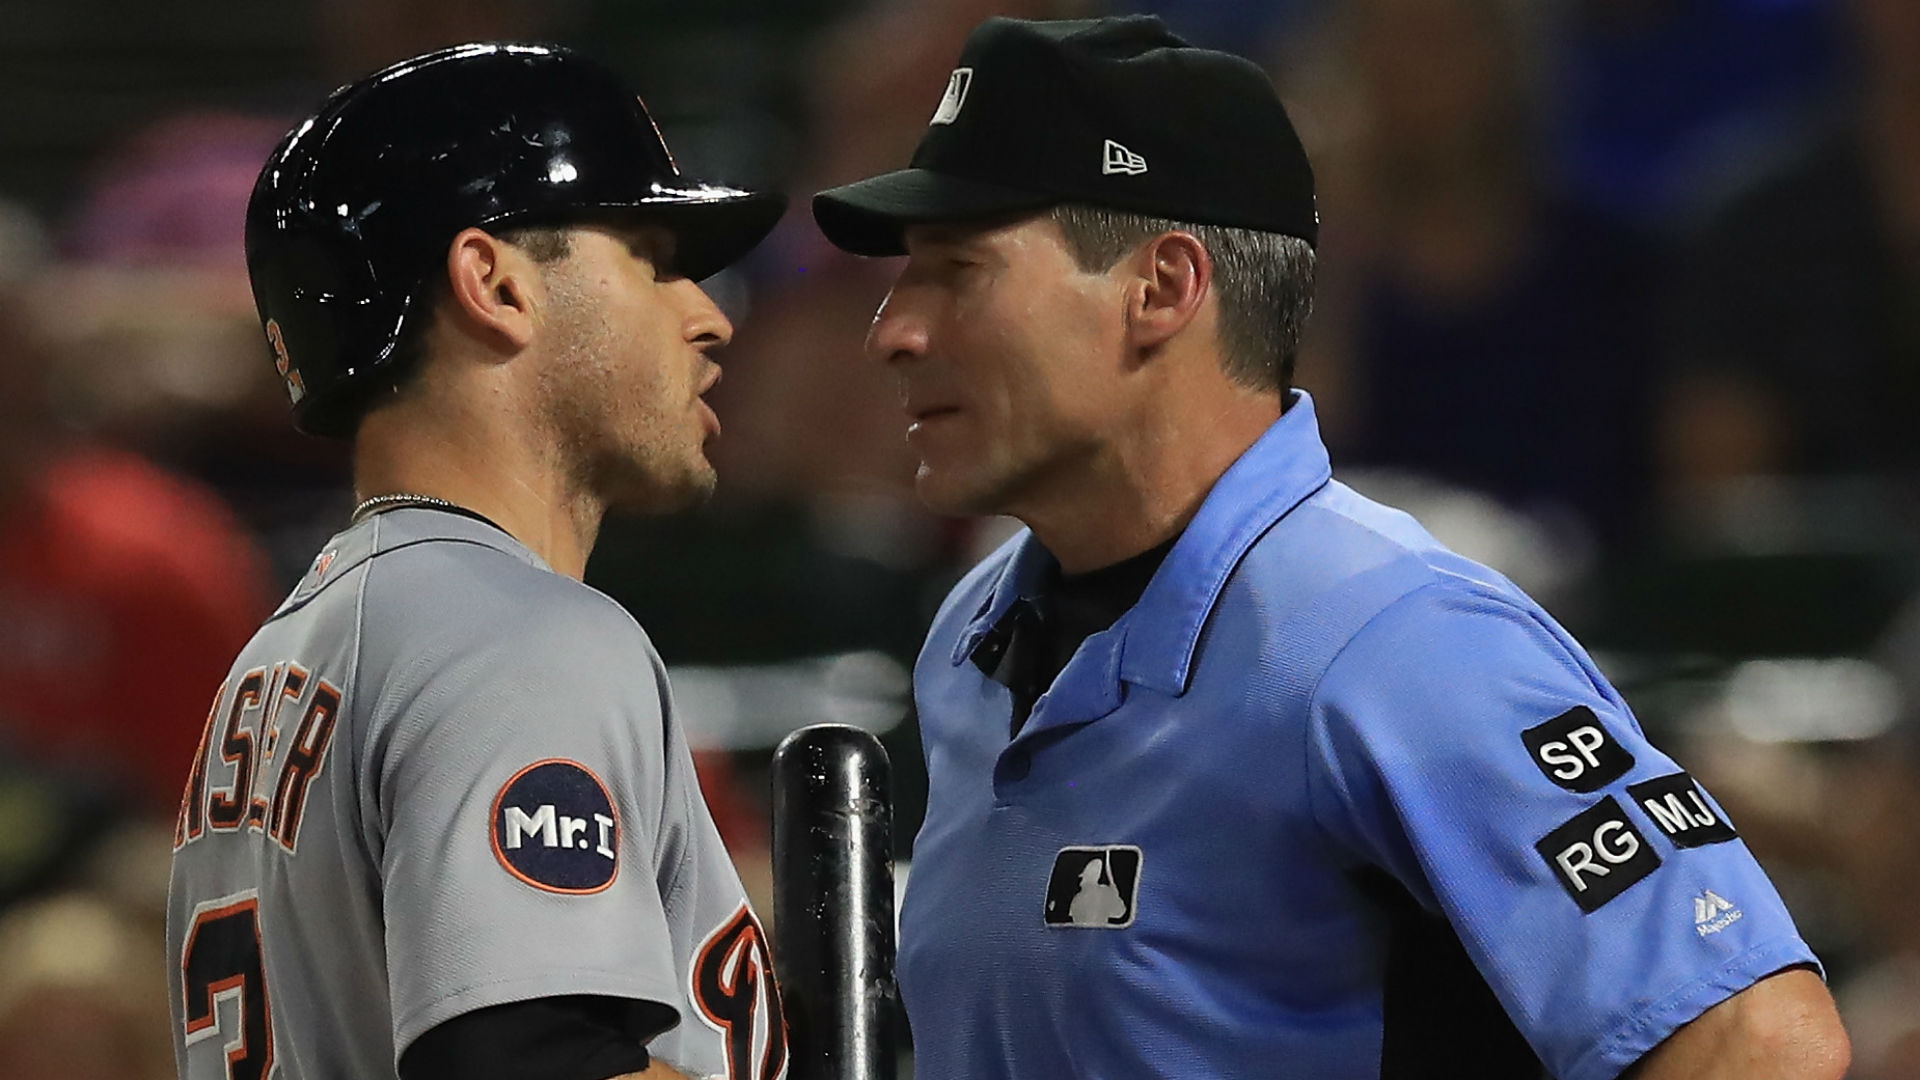 Tigers' Ian Kinsler was fined $10000 for umpire comments, according to report